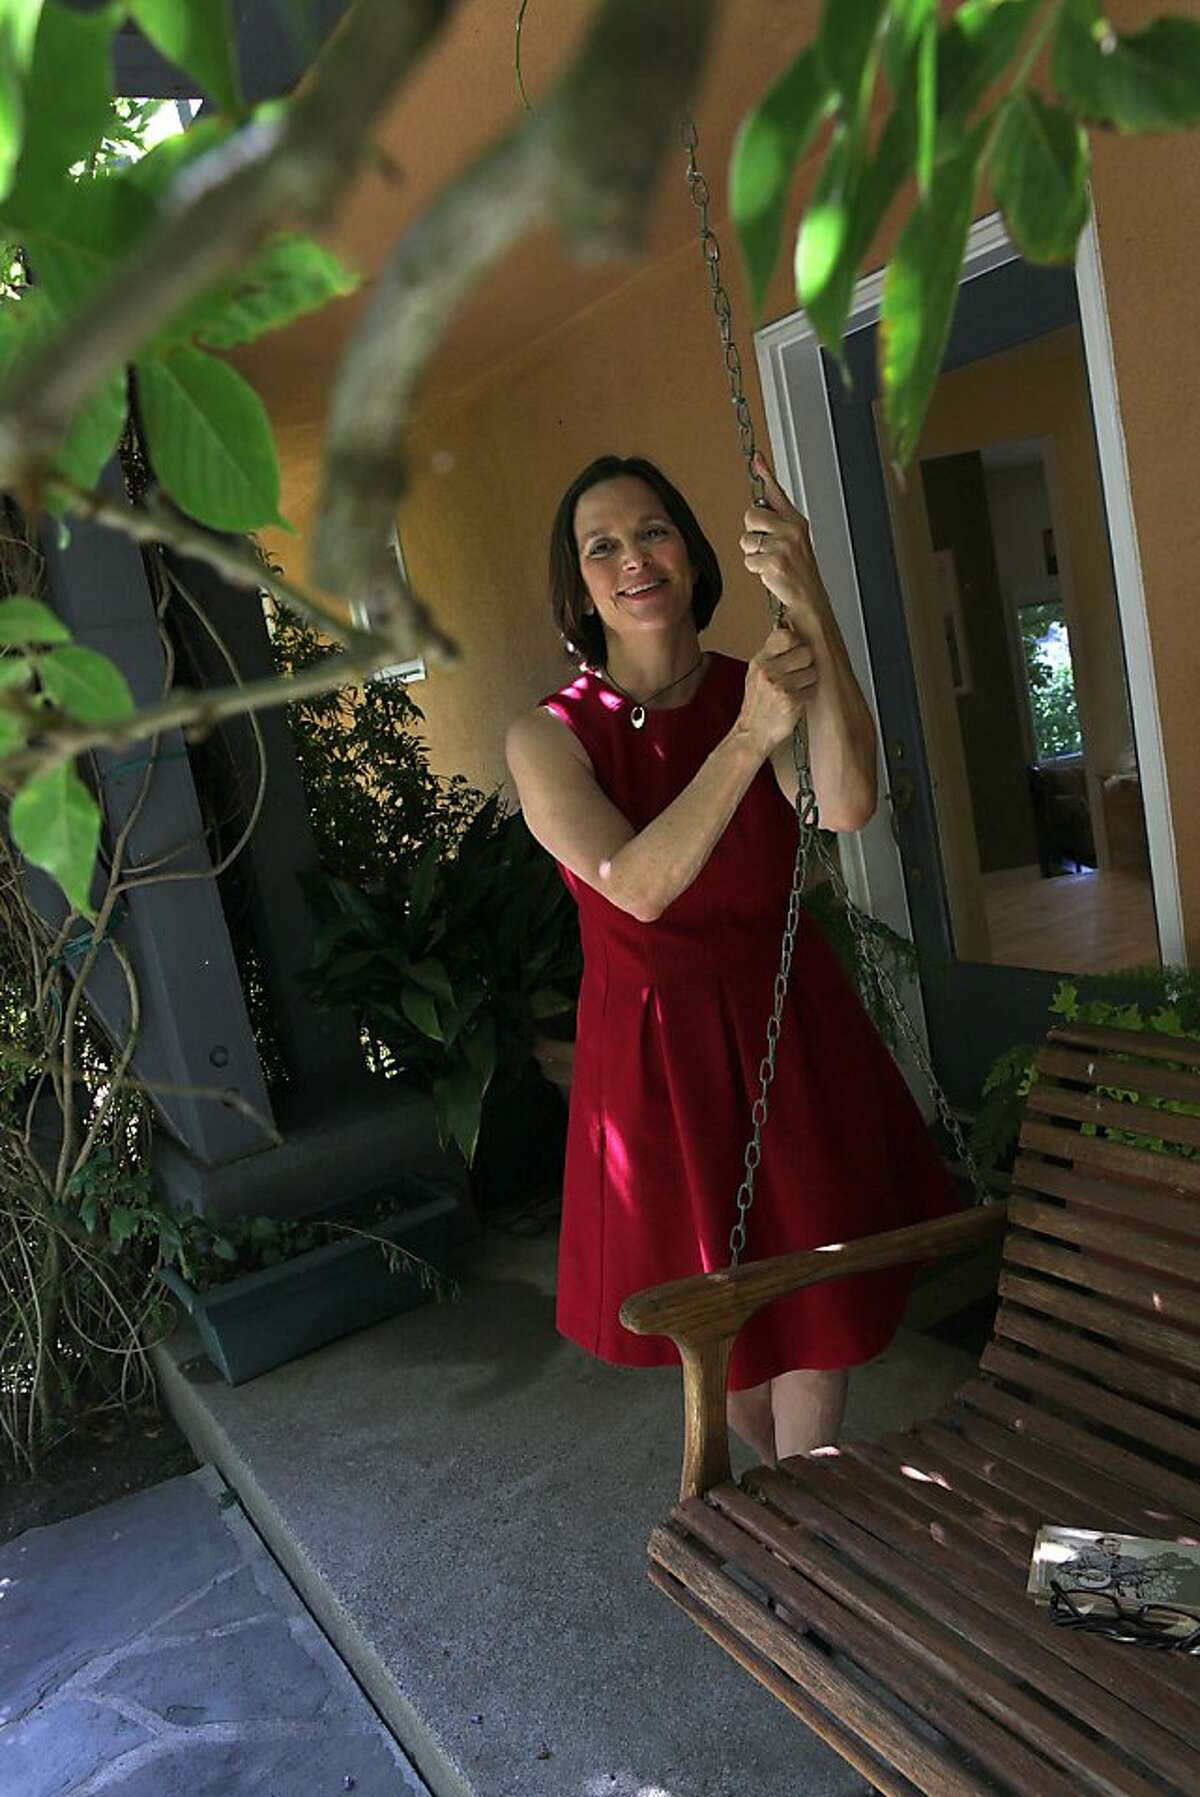 Berkleyside editor Frances Dinkelspiel at home in Berkeley, Calif., standing next to her porch swing on Wednesday, August 8, 2012.